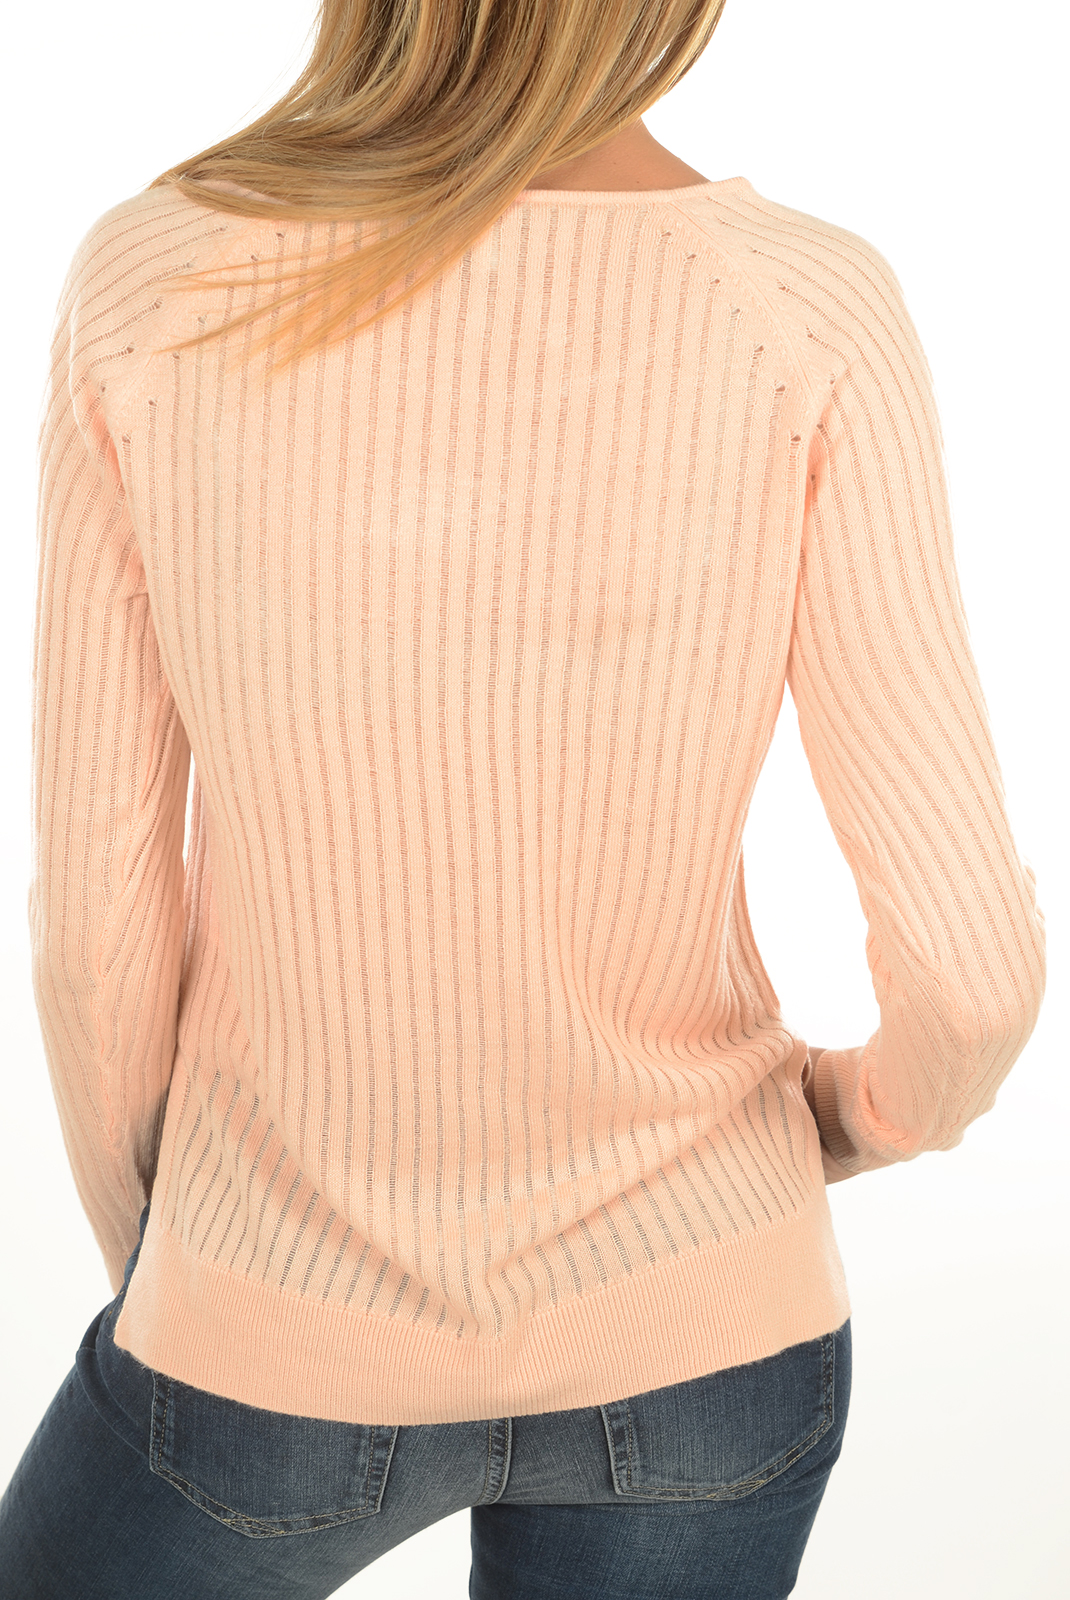 Pulls & gilets  Only ROSE RIB L/S PEACHY